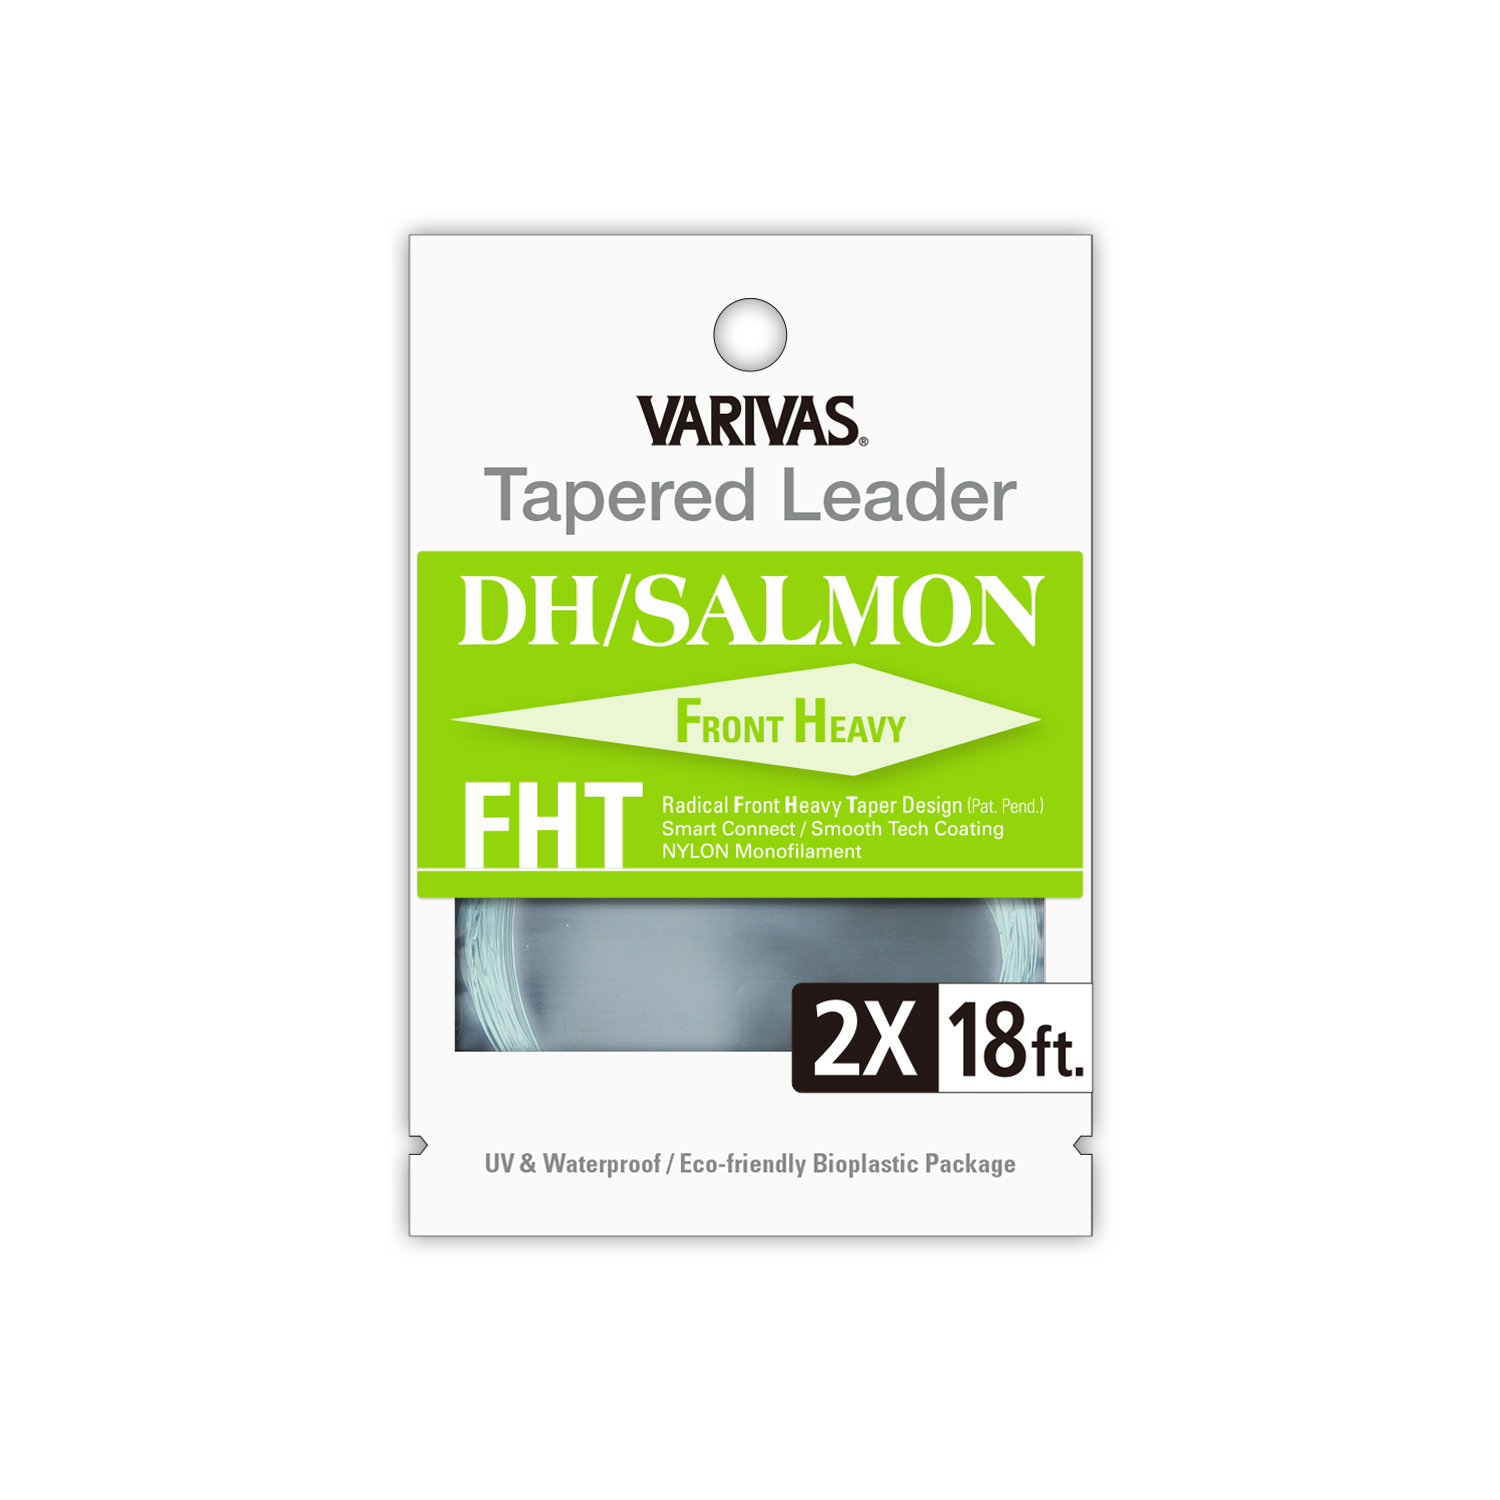 Tapered Leader [DH SALMON FHT NYLON]